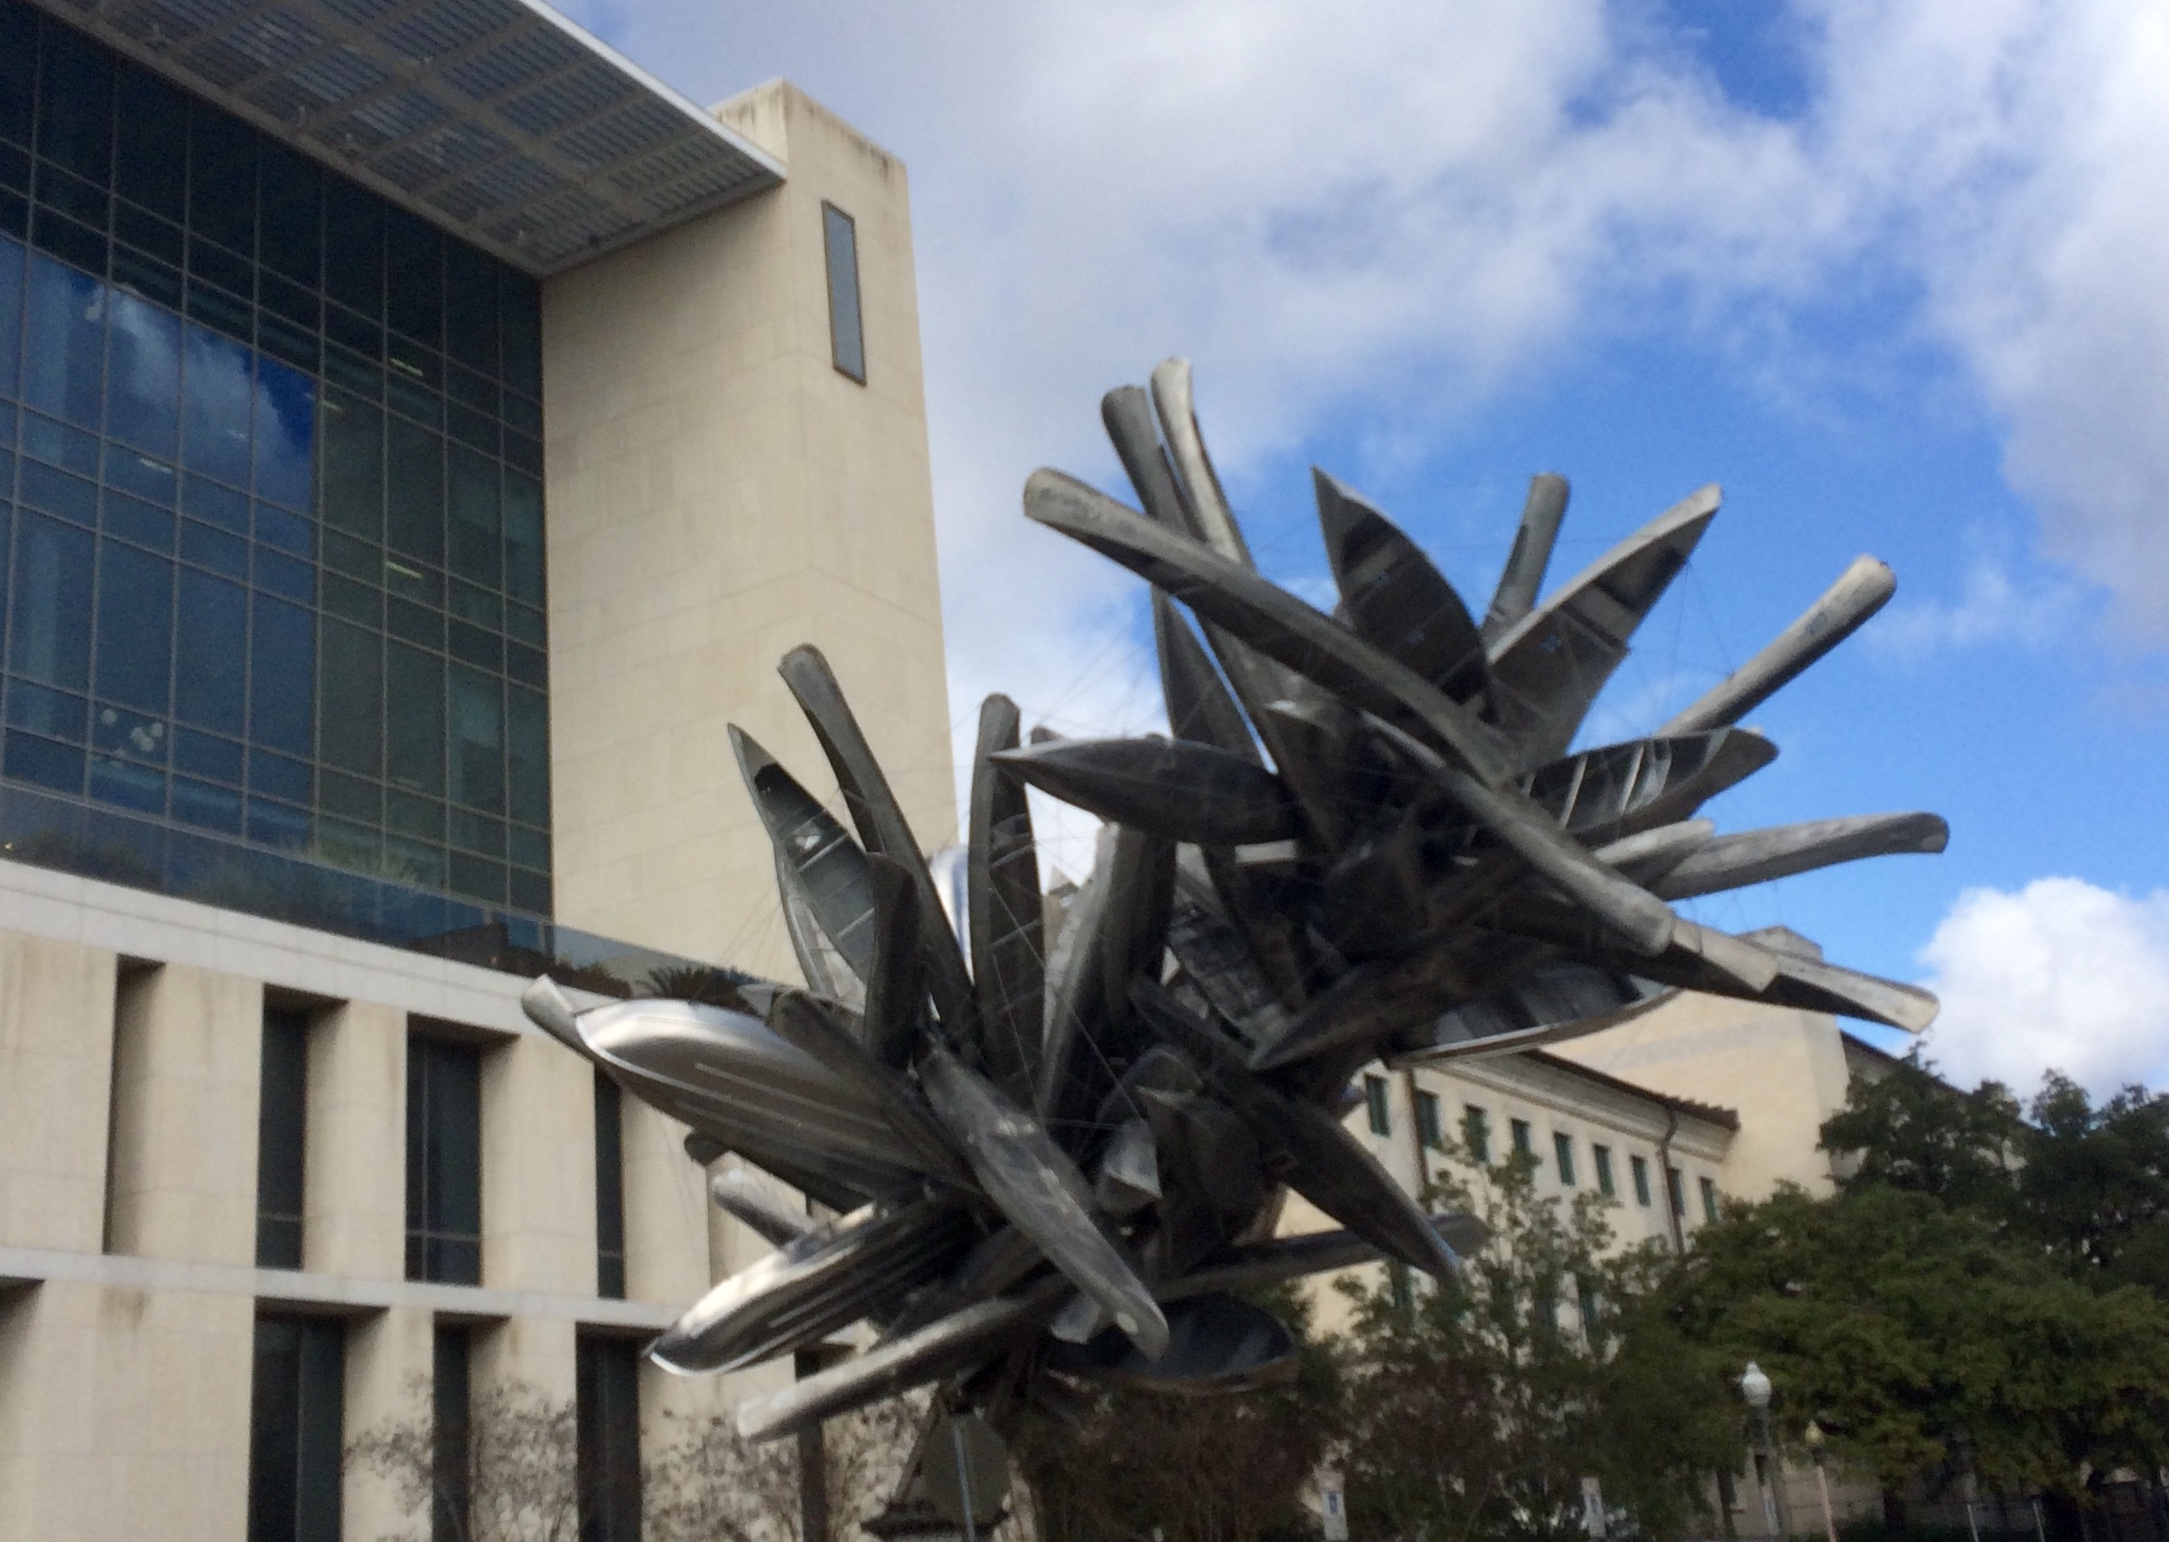 The UT campus offers lots of free things to do in Austin